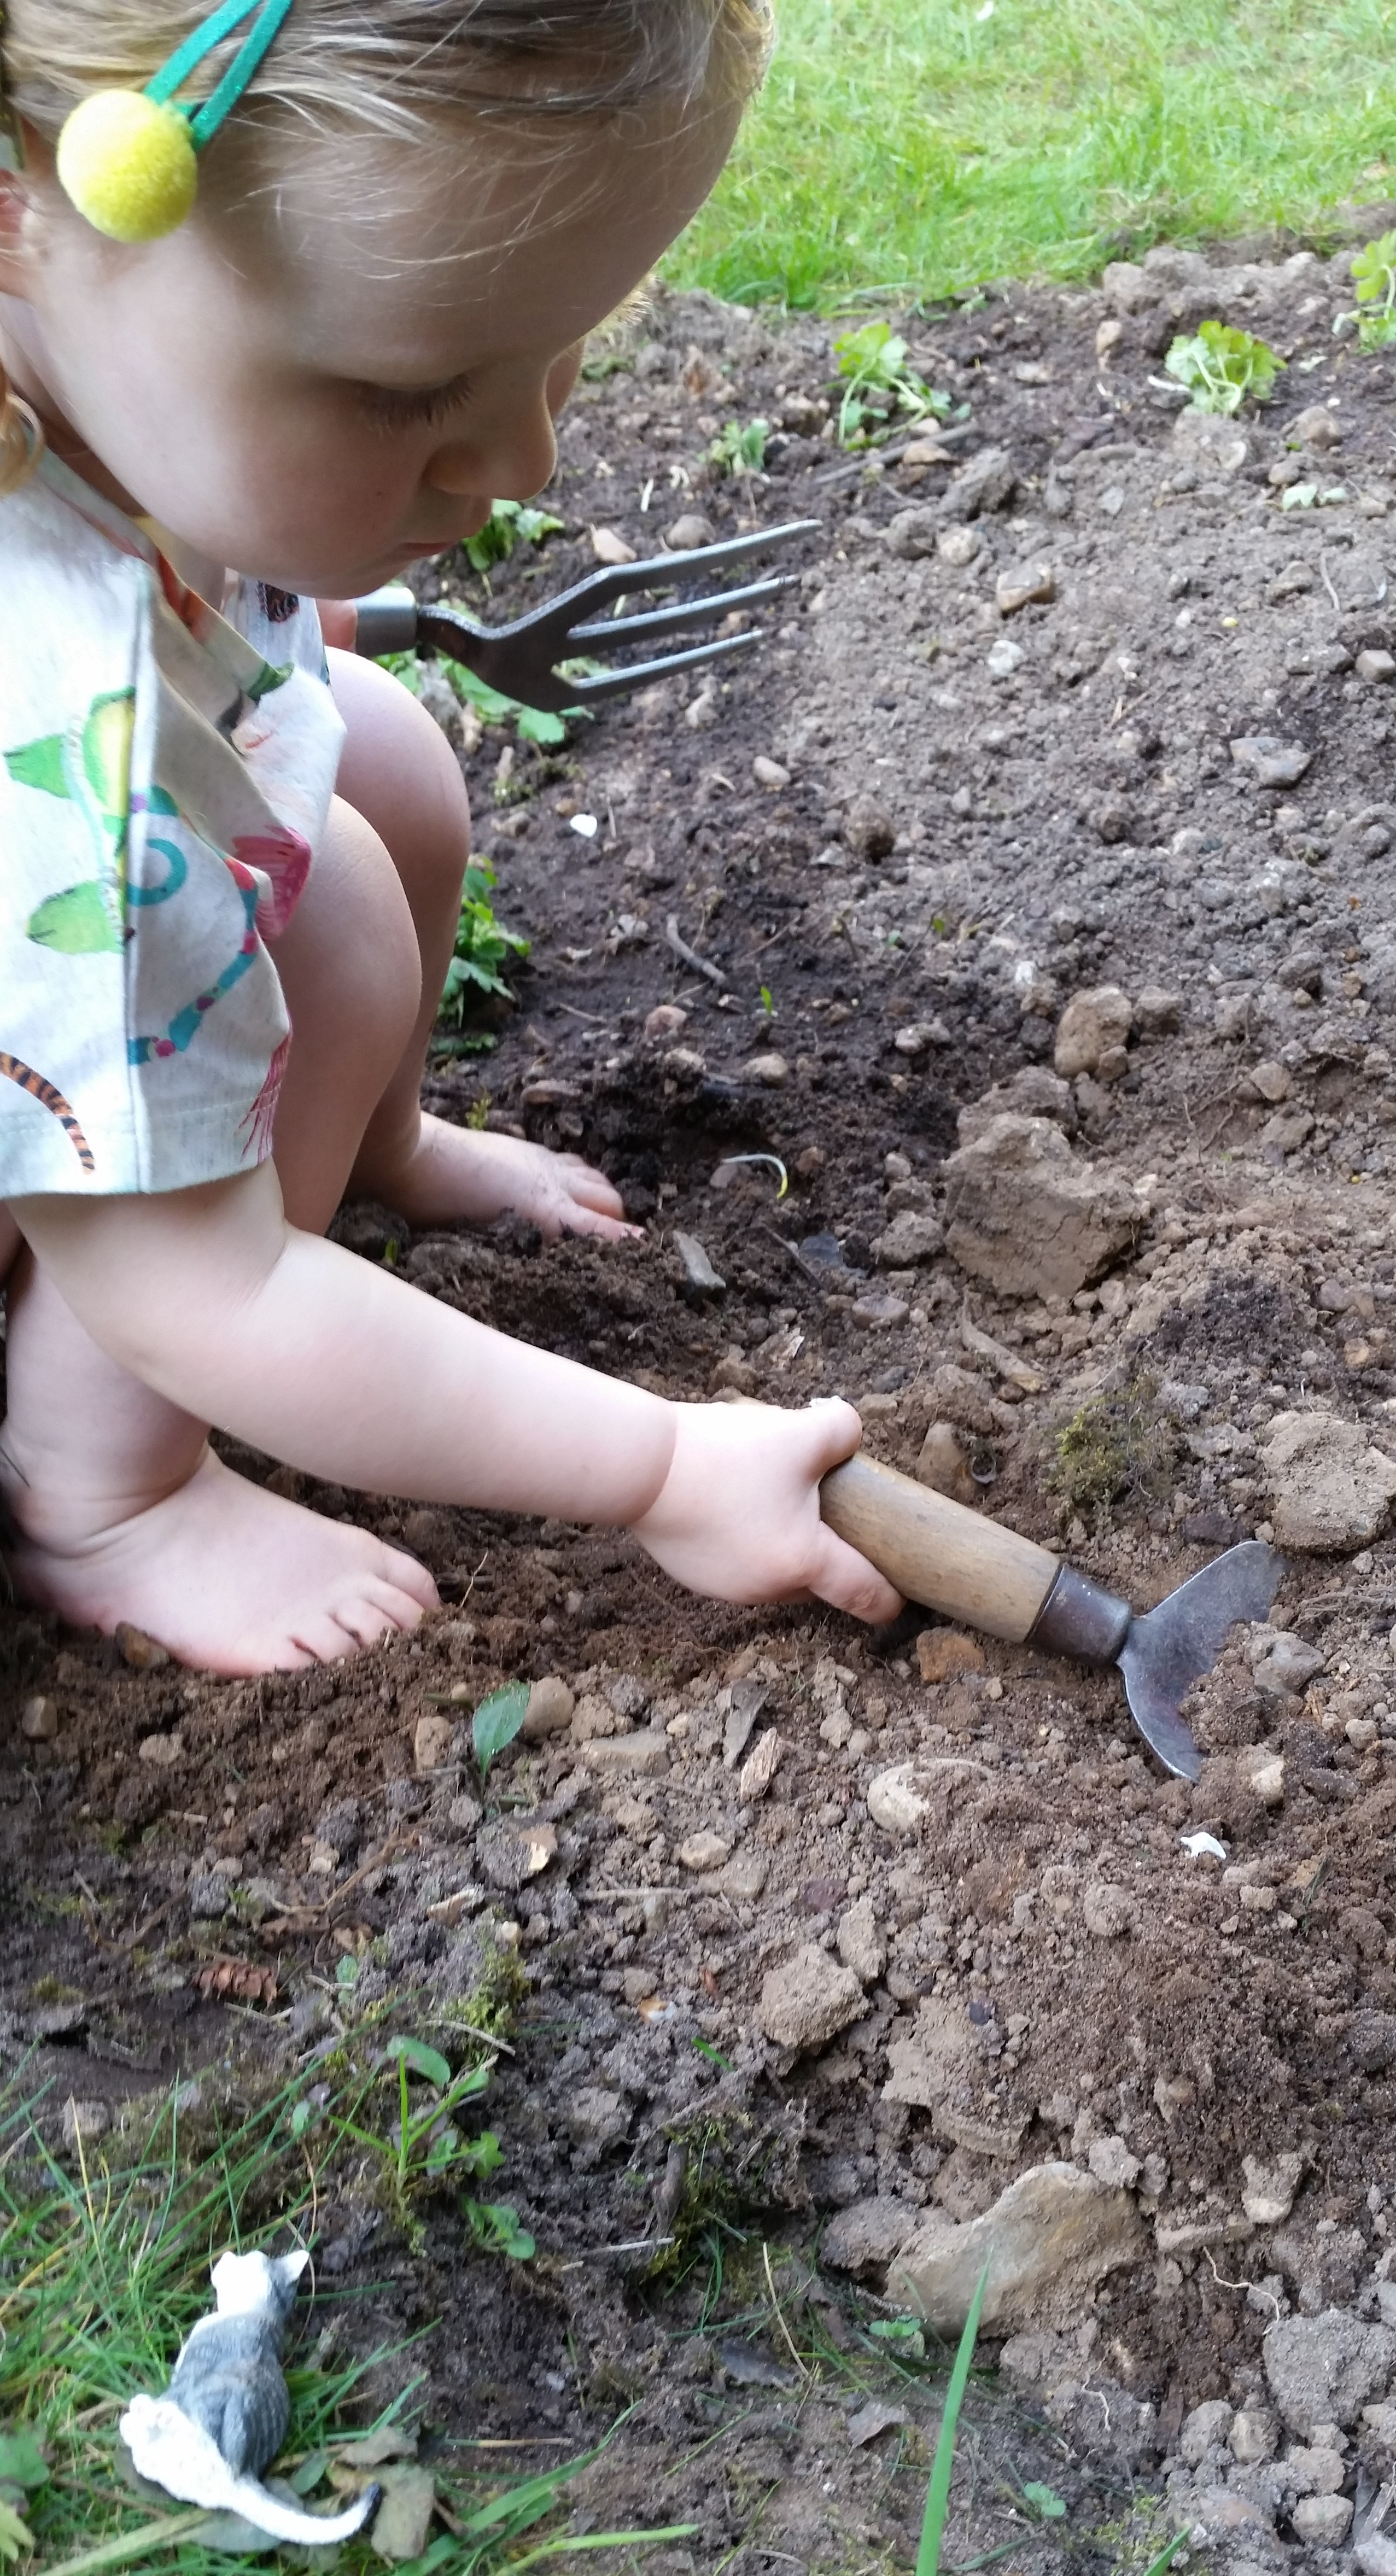 A young child crouches in a flower bed using a trowel during a gardening activity